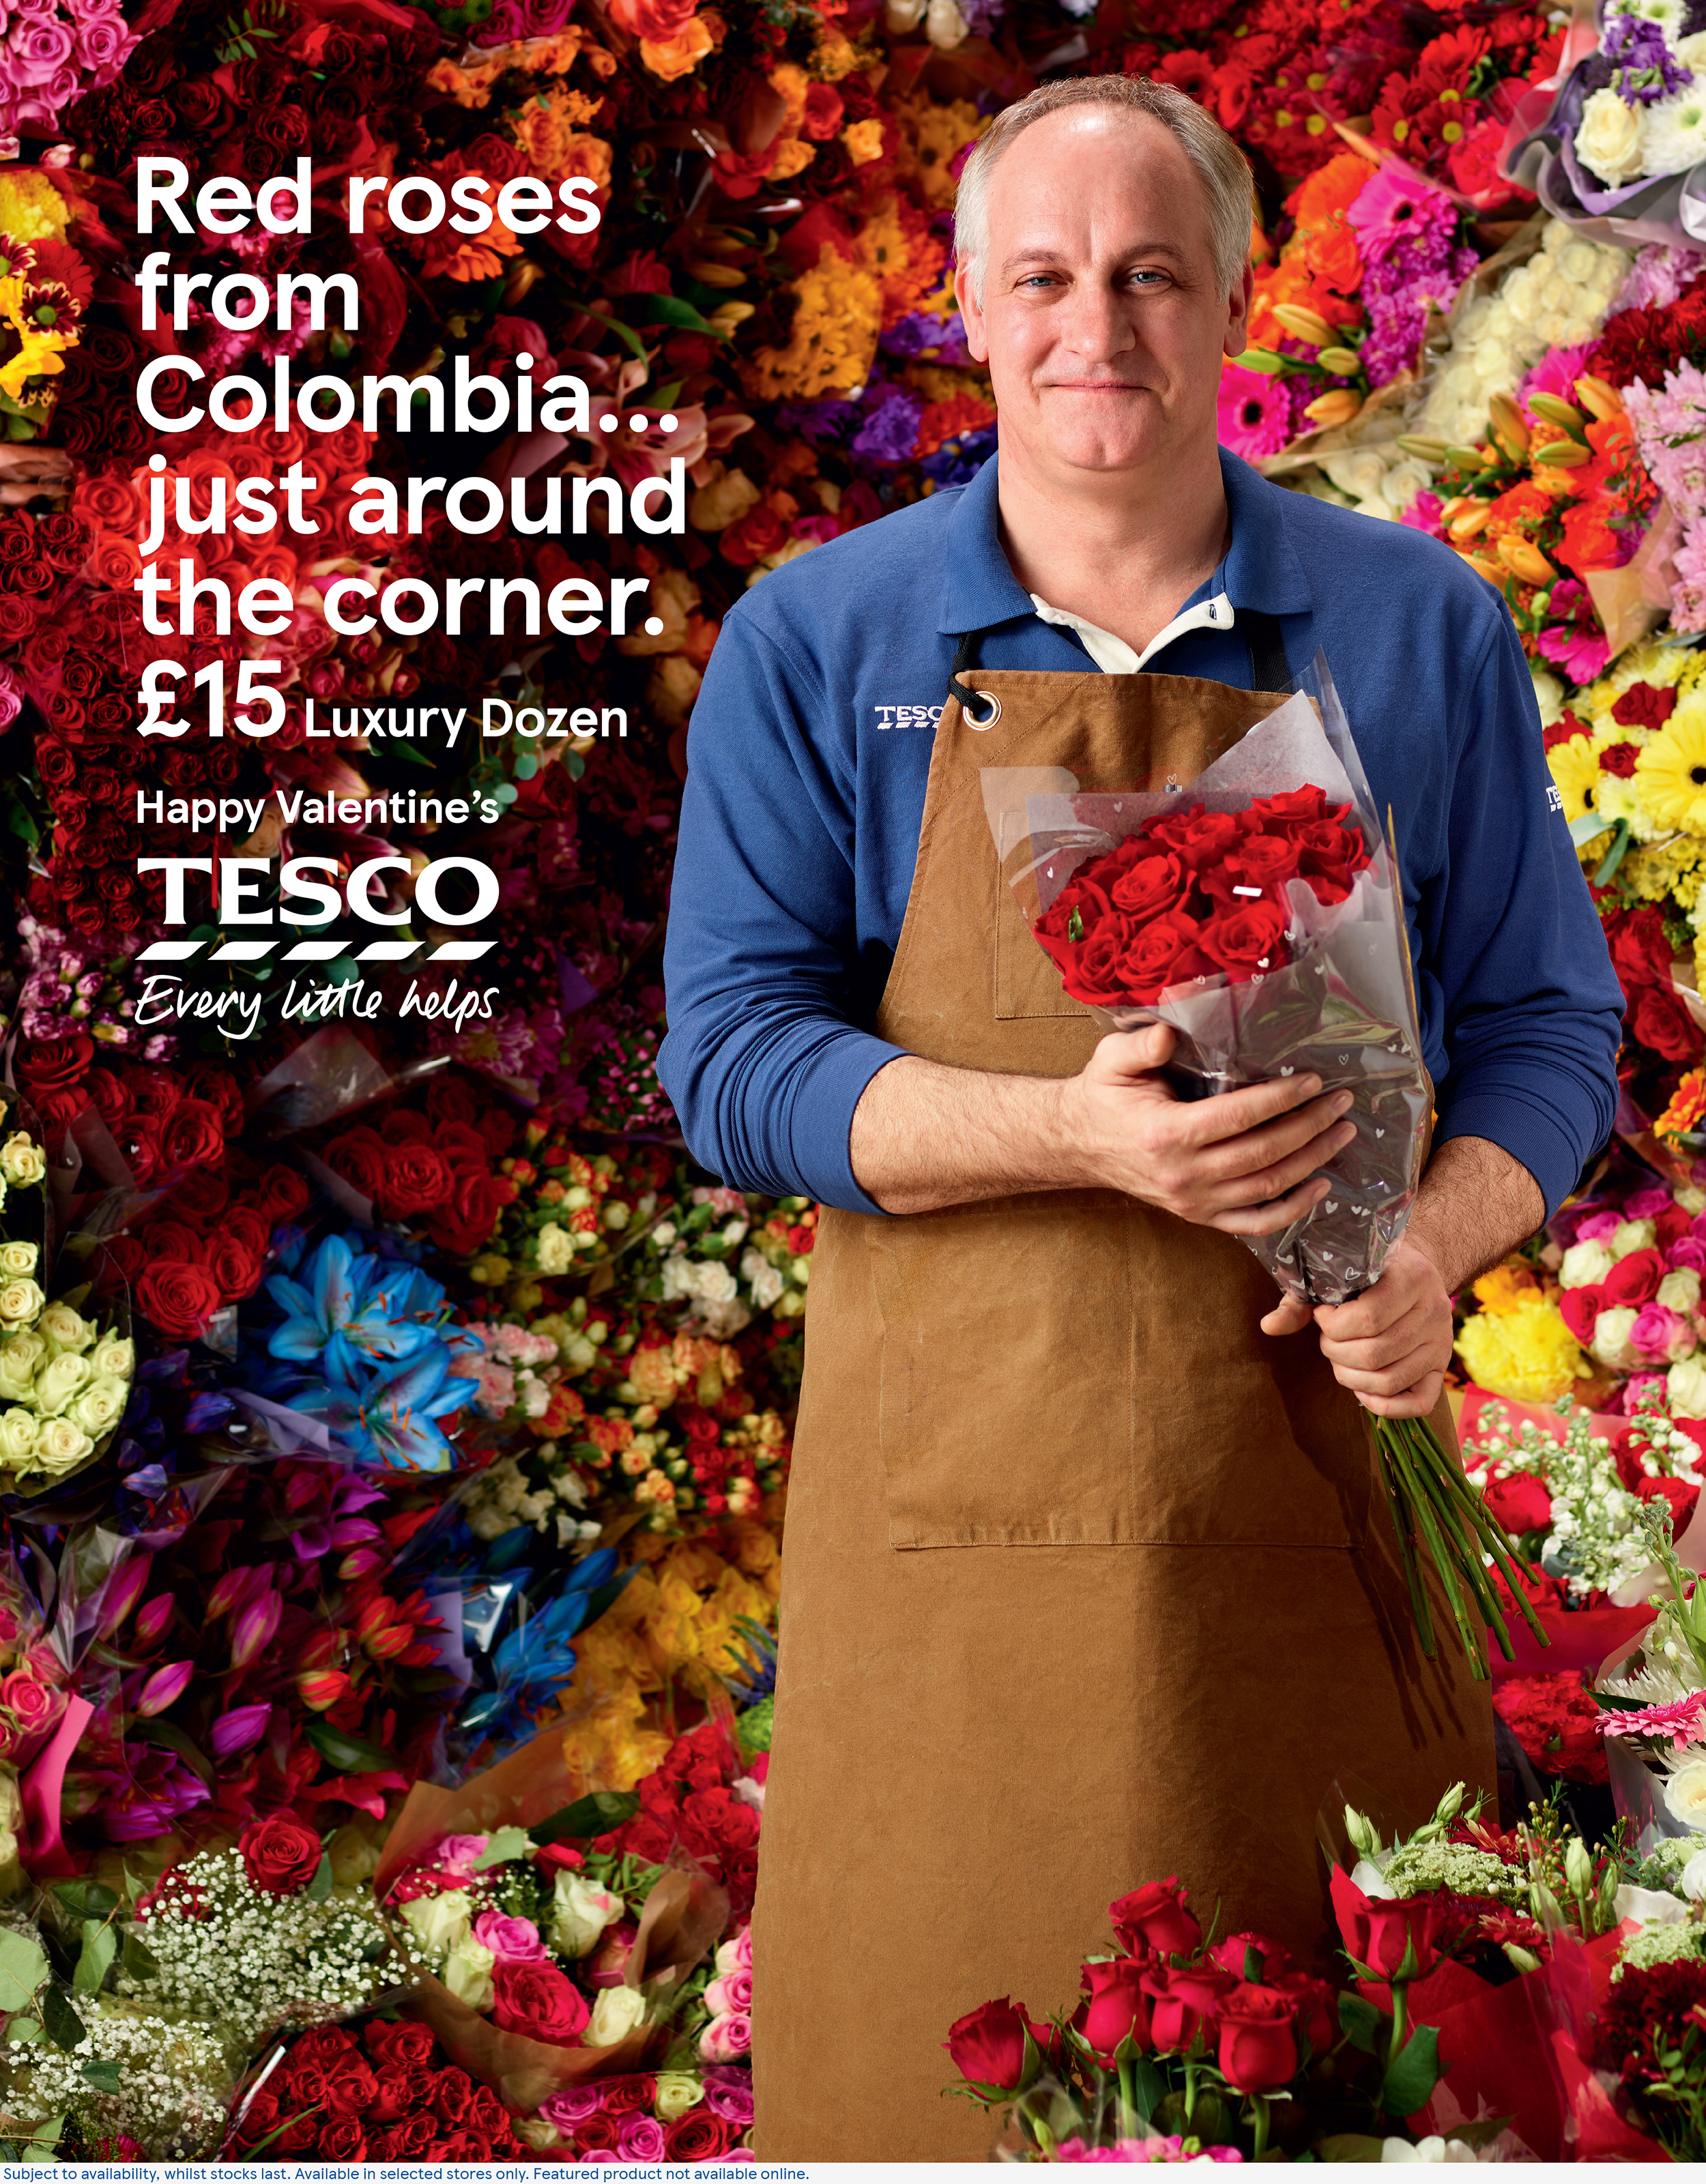 52814_ValentinesDay_Colombia_338x264.jpg